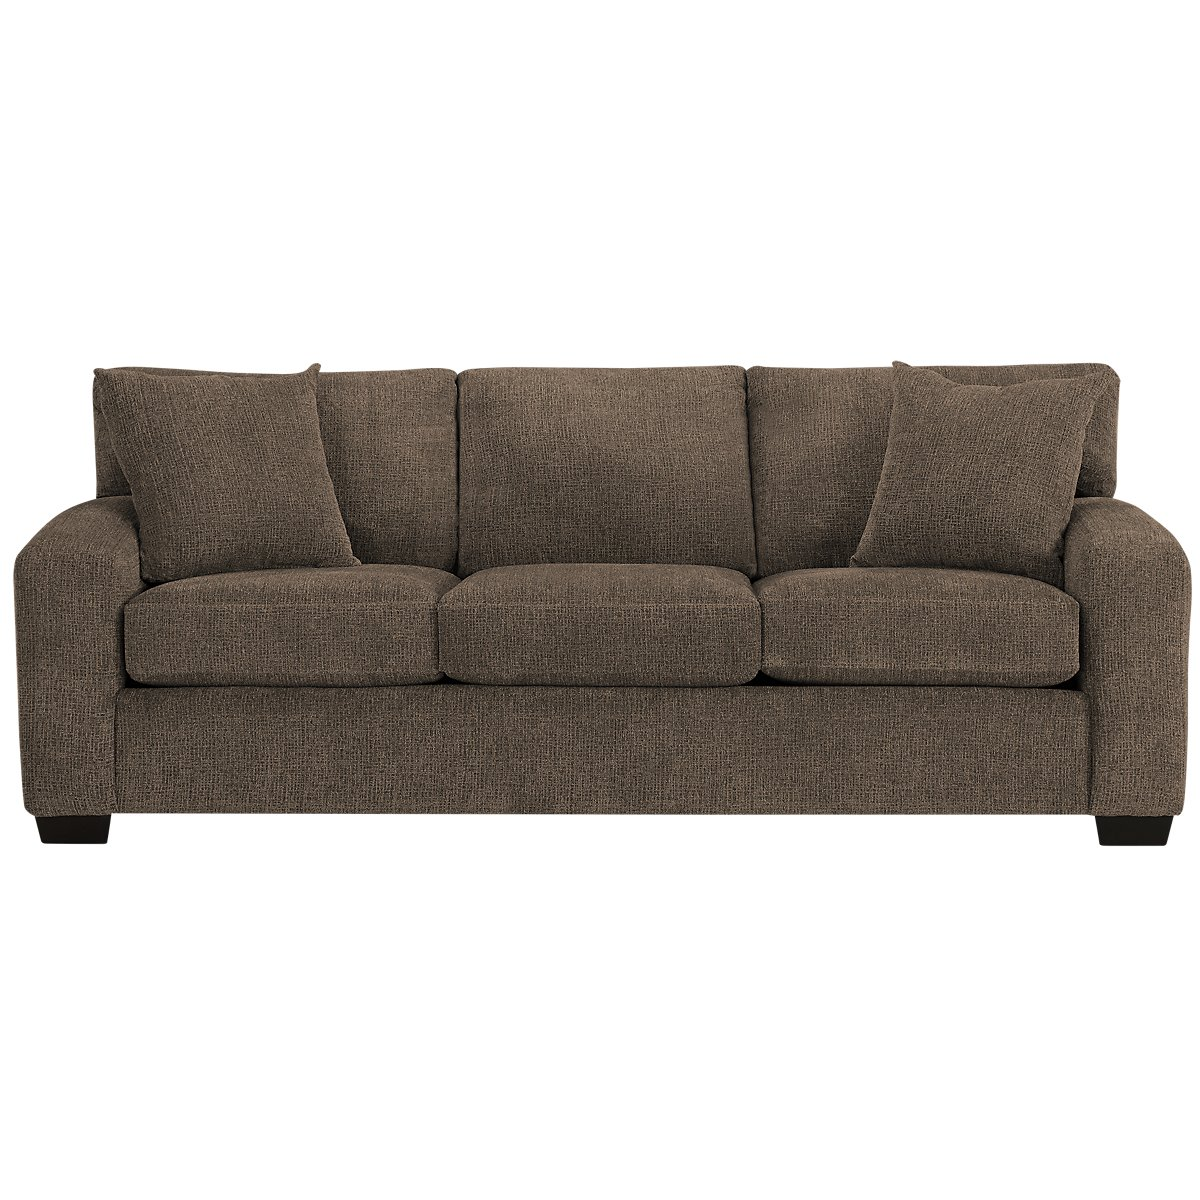 Dark Brown Microfiber Sofa Abson Living Monrovia Sectional Sofa Chaise In Dark Brown Thesofa